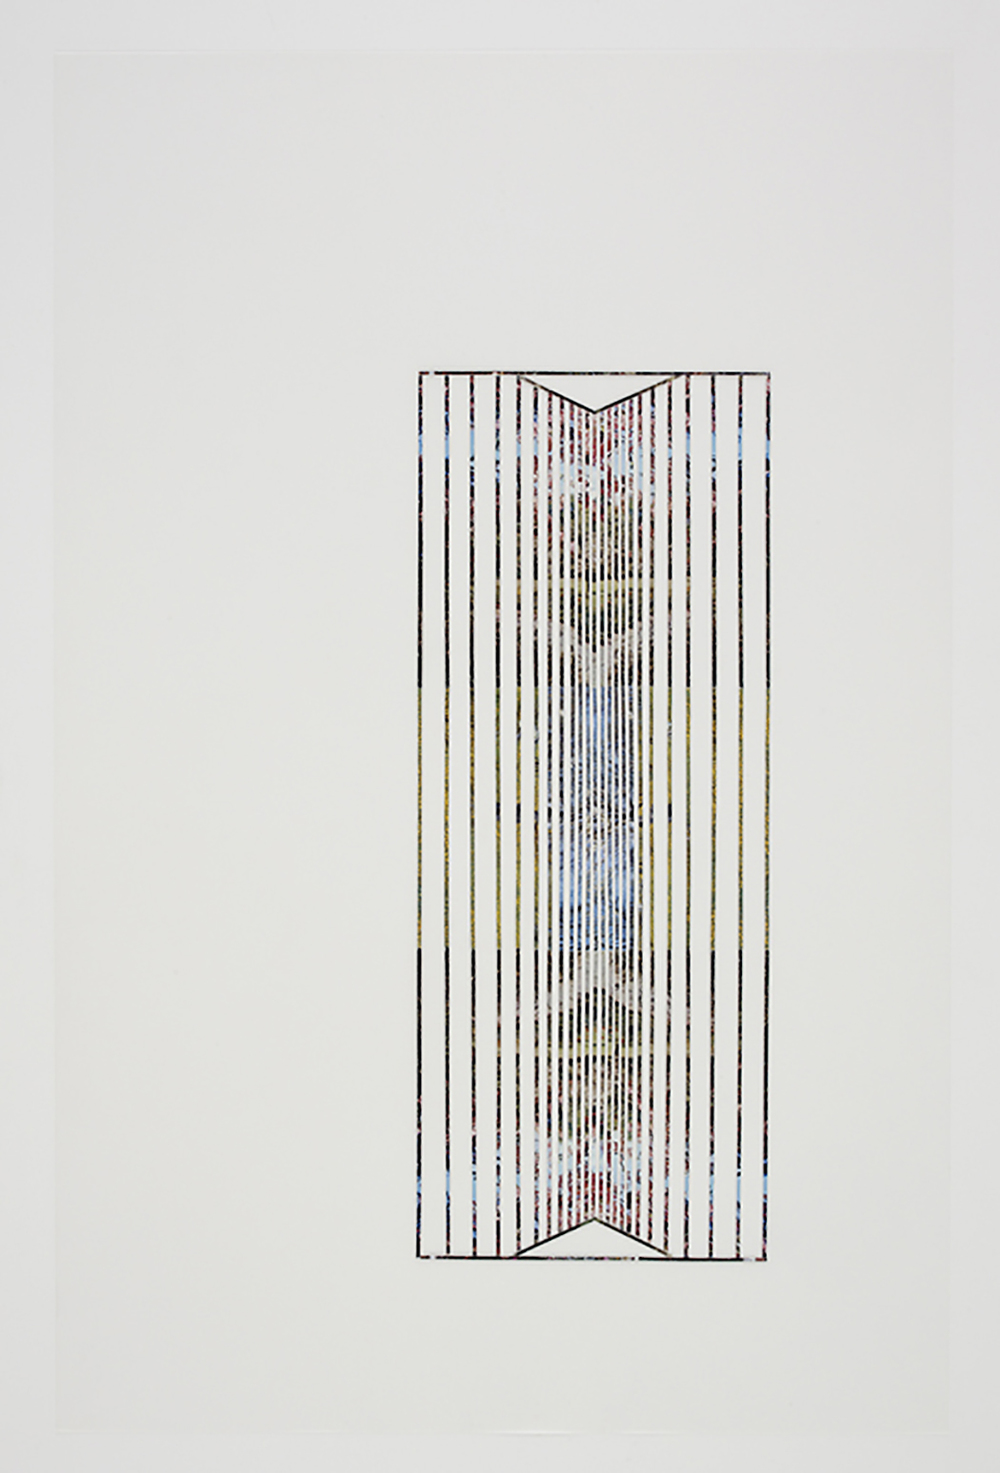 Roof #5, 2010, collage on drafting film paper, 34 x 22 inches/ 86 x 56 cm